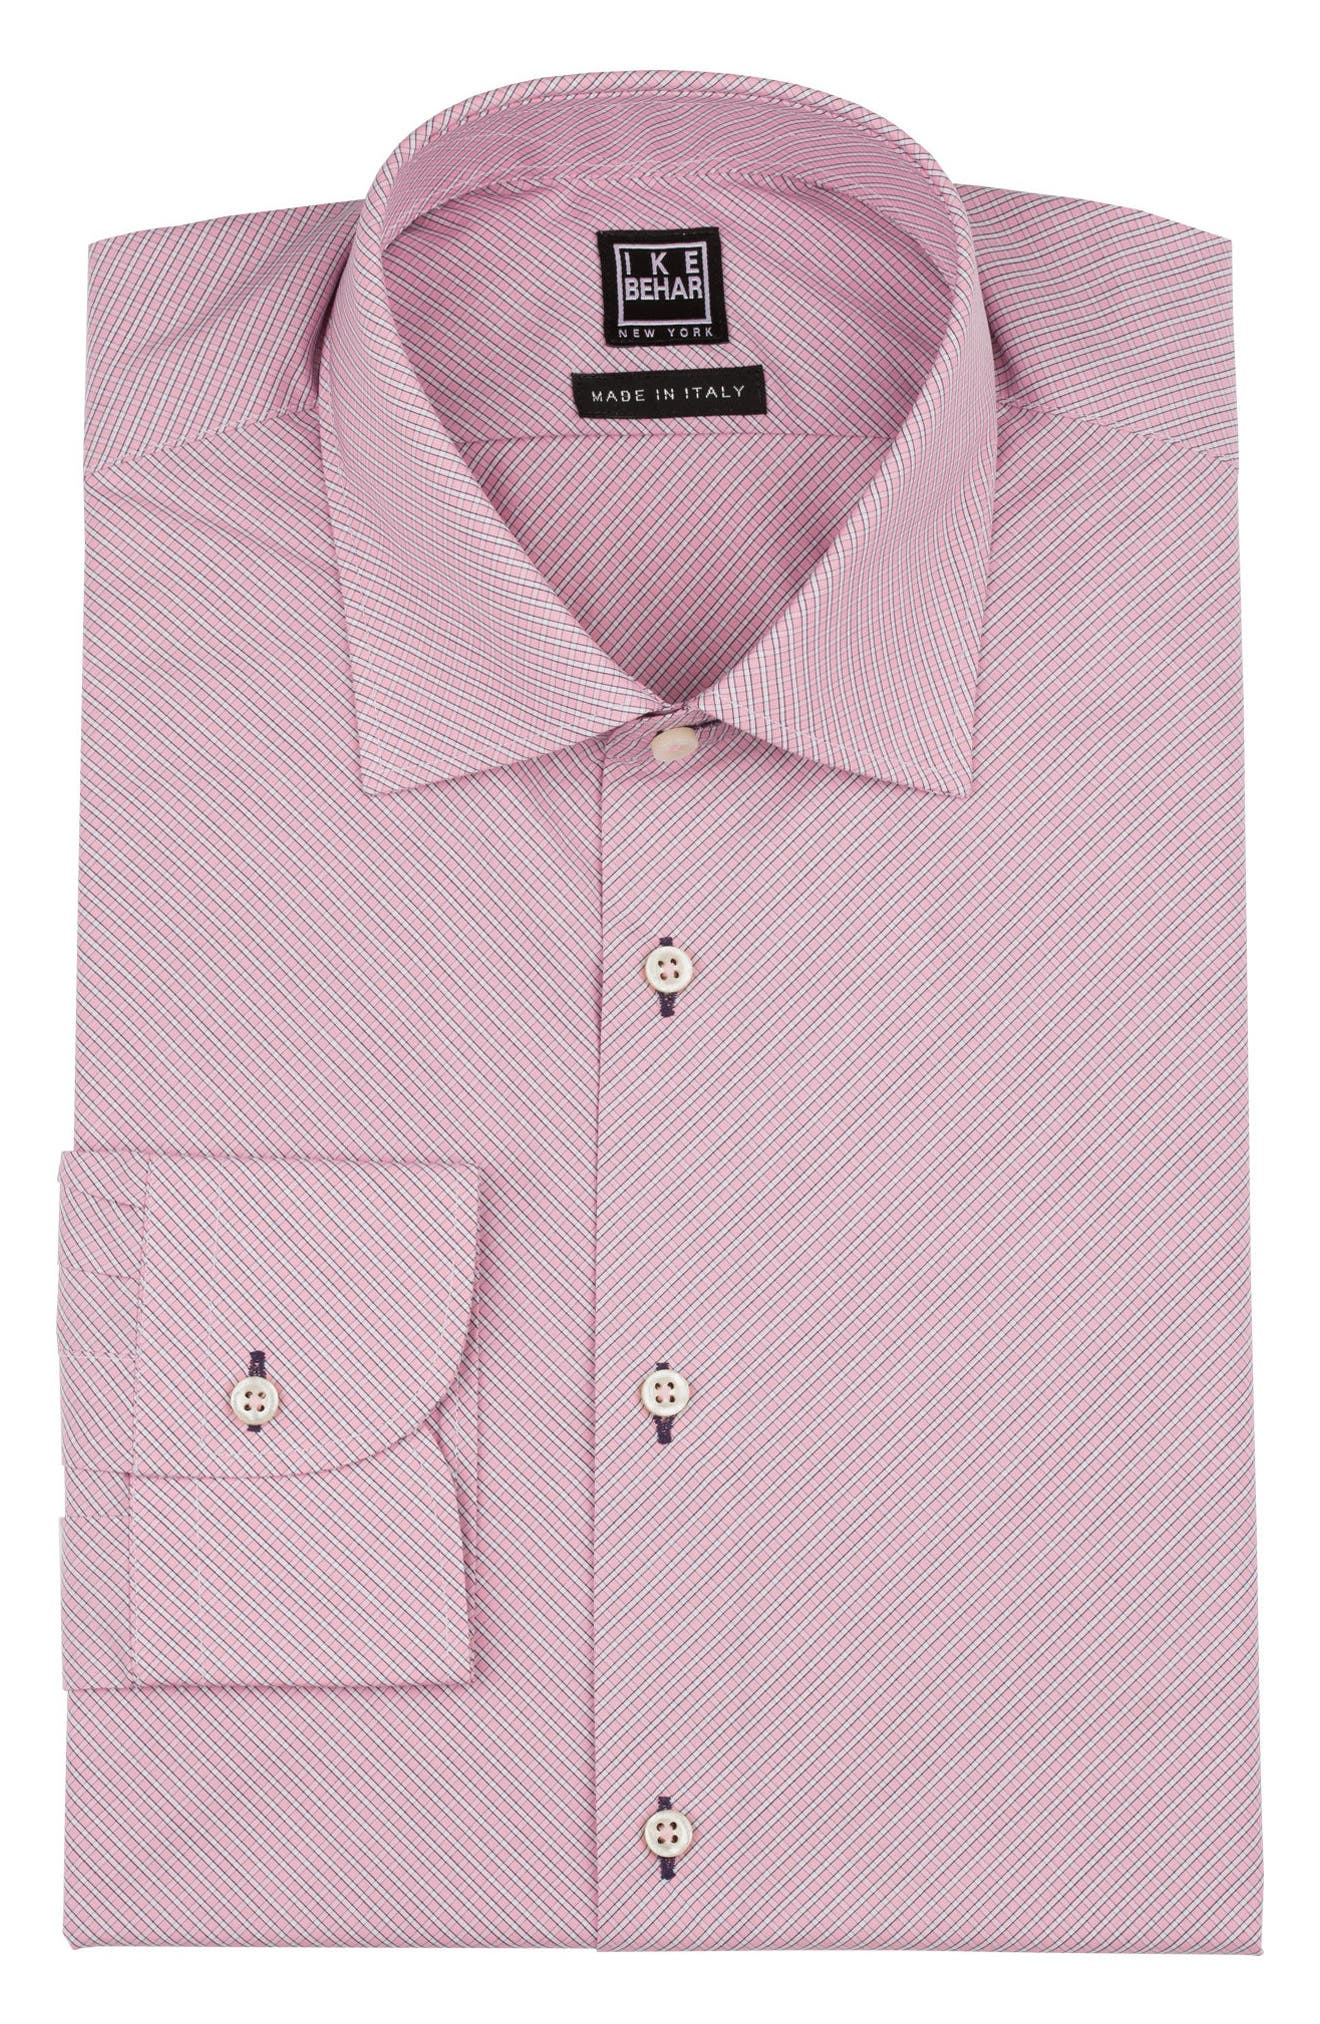 Regular Fit Check Dress Shirt,                             Alternate thumbnail 5, color,                             PINK